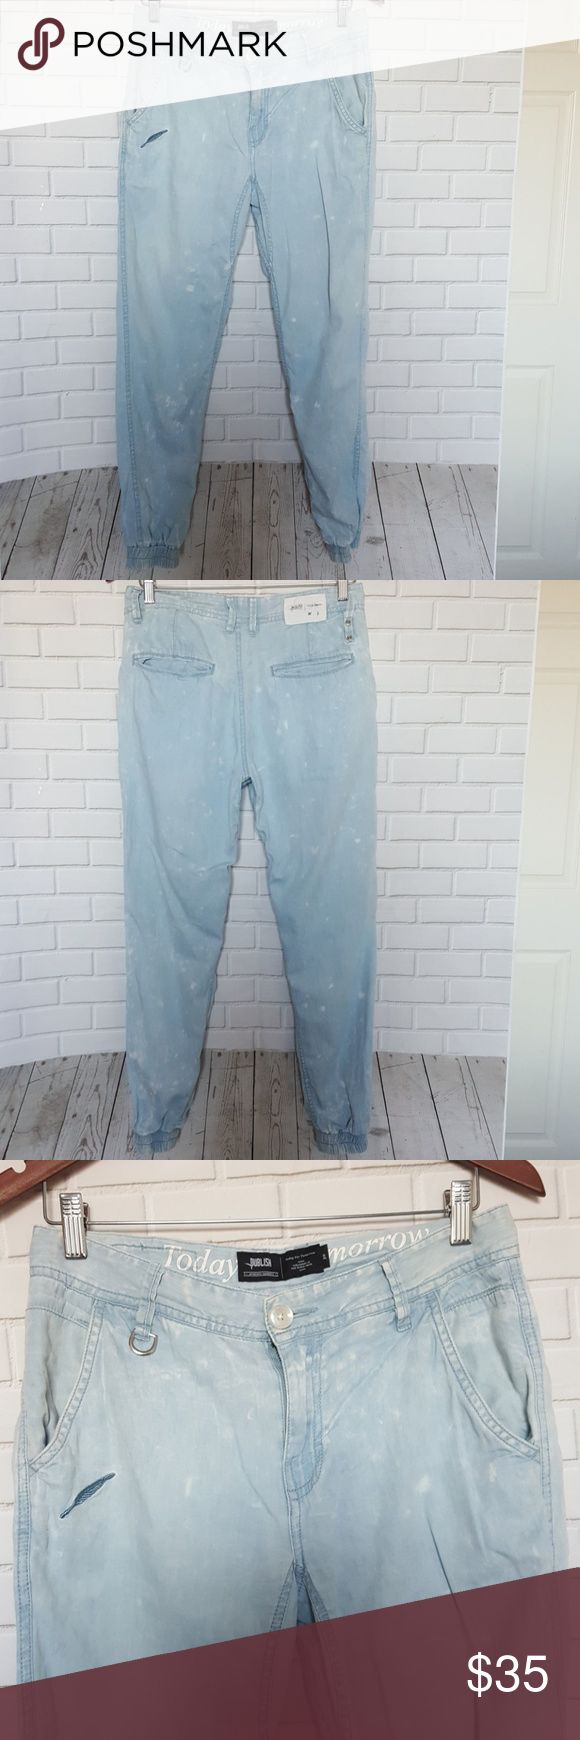 """Publish Jogger Pants Denim Jeans Size 30 Lightweight, light wash denim jogger. Excellent preowned condition. 5 pocket, zip fly Size 30 Measurements with garment laid flat: WAIST  - 15 inches x 2 = 30"""" waist HIPS - 18 inches x 2 = 36"""" hips INSEAM- 27 inches  LENGTH  - 37 inches  LEG OPENING - 4 inches, stretches to 5.5 inches Publish Pants Track Pants & Joggers"""